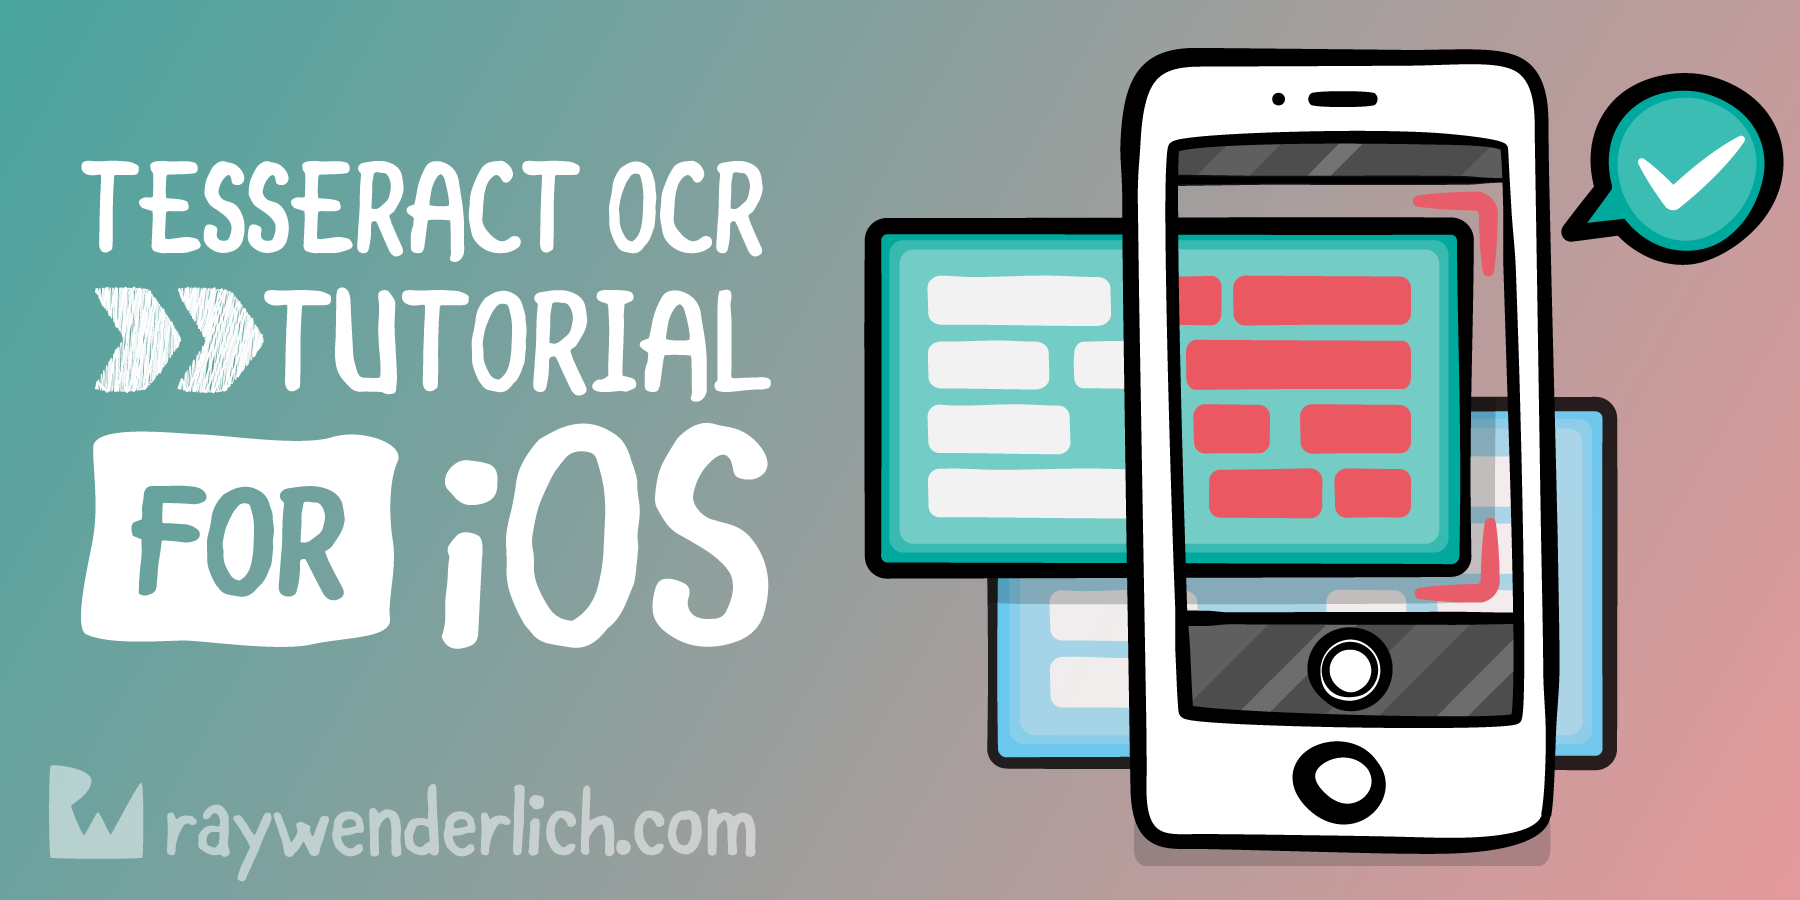 Tesseract OCR Tutorial for iOS | raywenderlich com